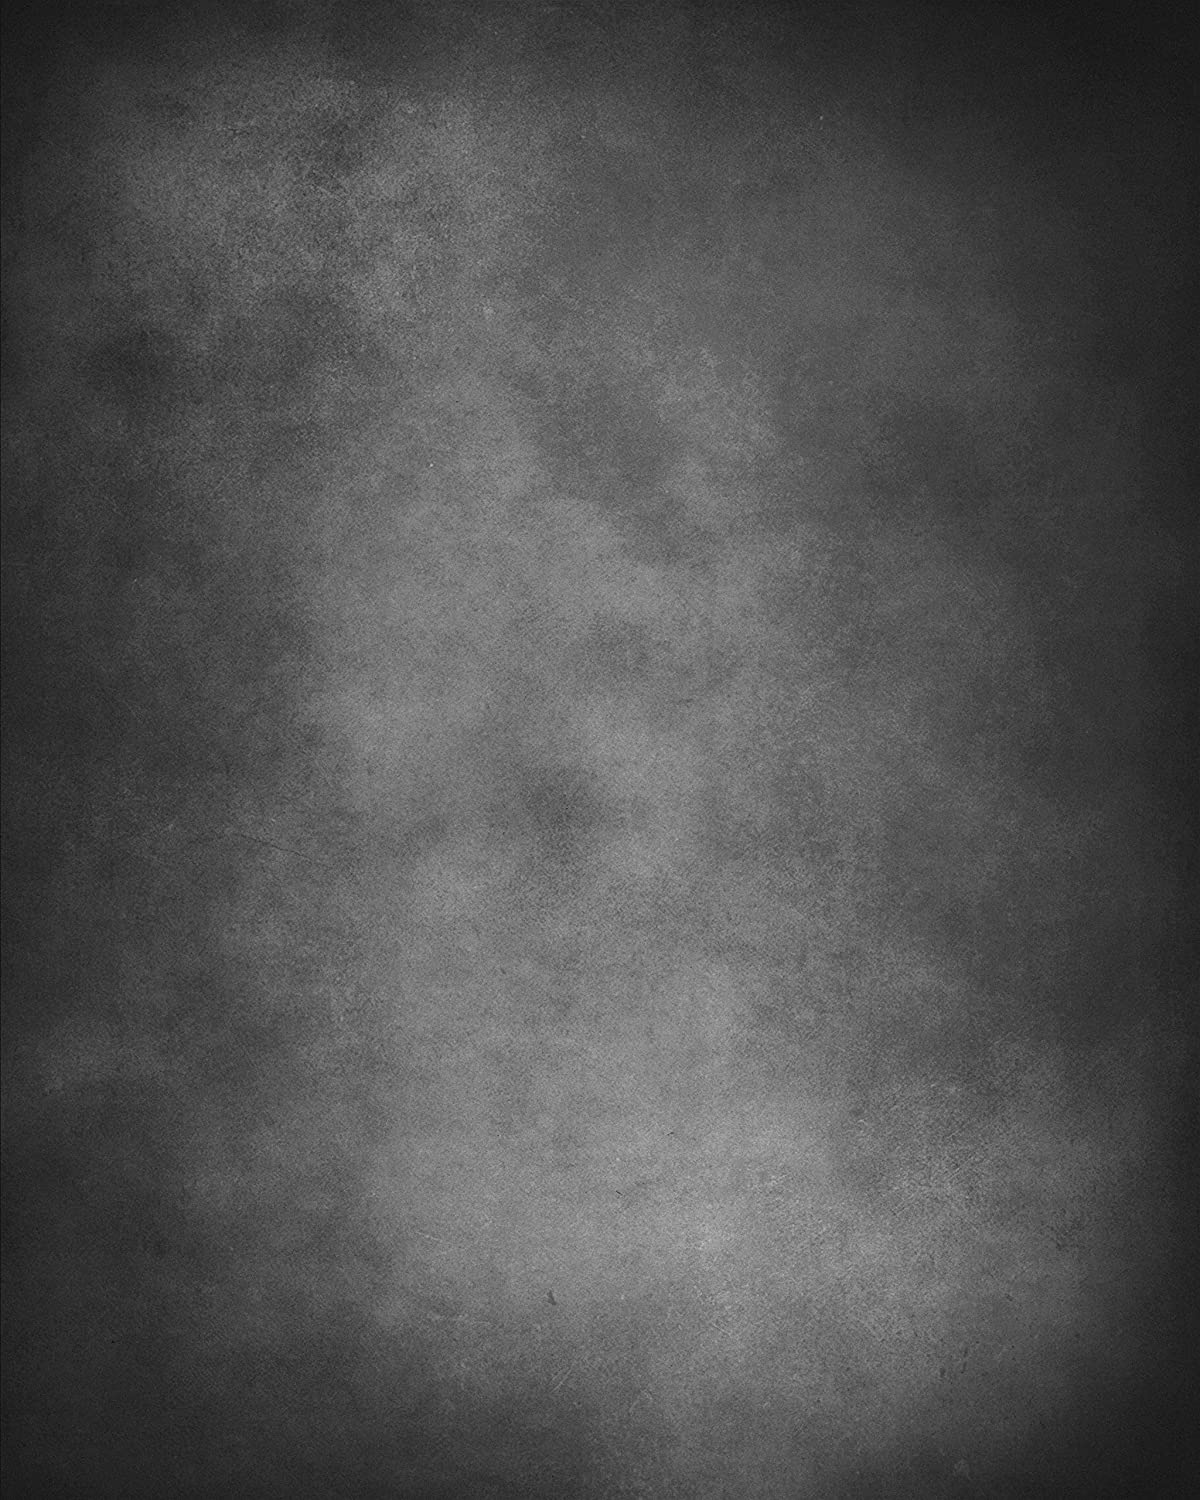 Rustic Grey Concrete Wall Backdrop Wrinkle Free Cloth Vintage Retro Gray Old Abstract Cement Wall Room Portrait Photo Printed Fabric Photography Background (P0095, 8' Wide by 10' Tall)